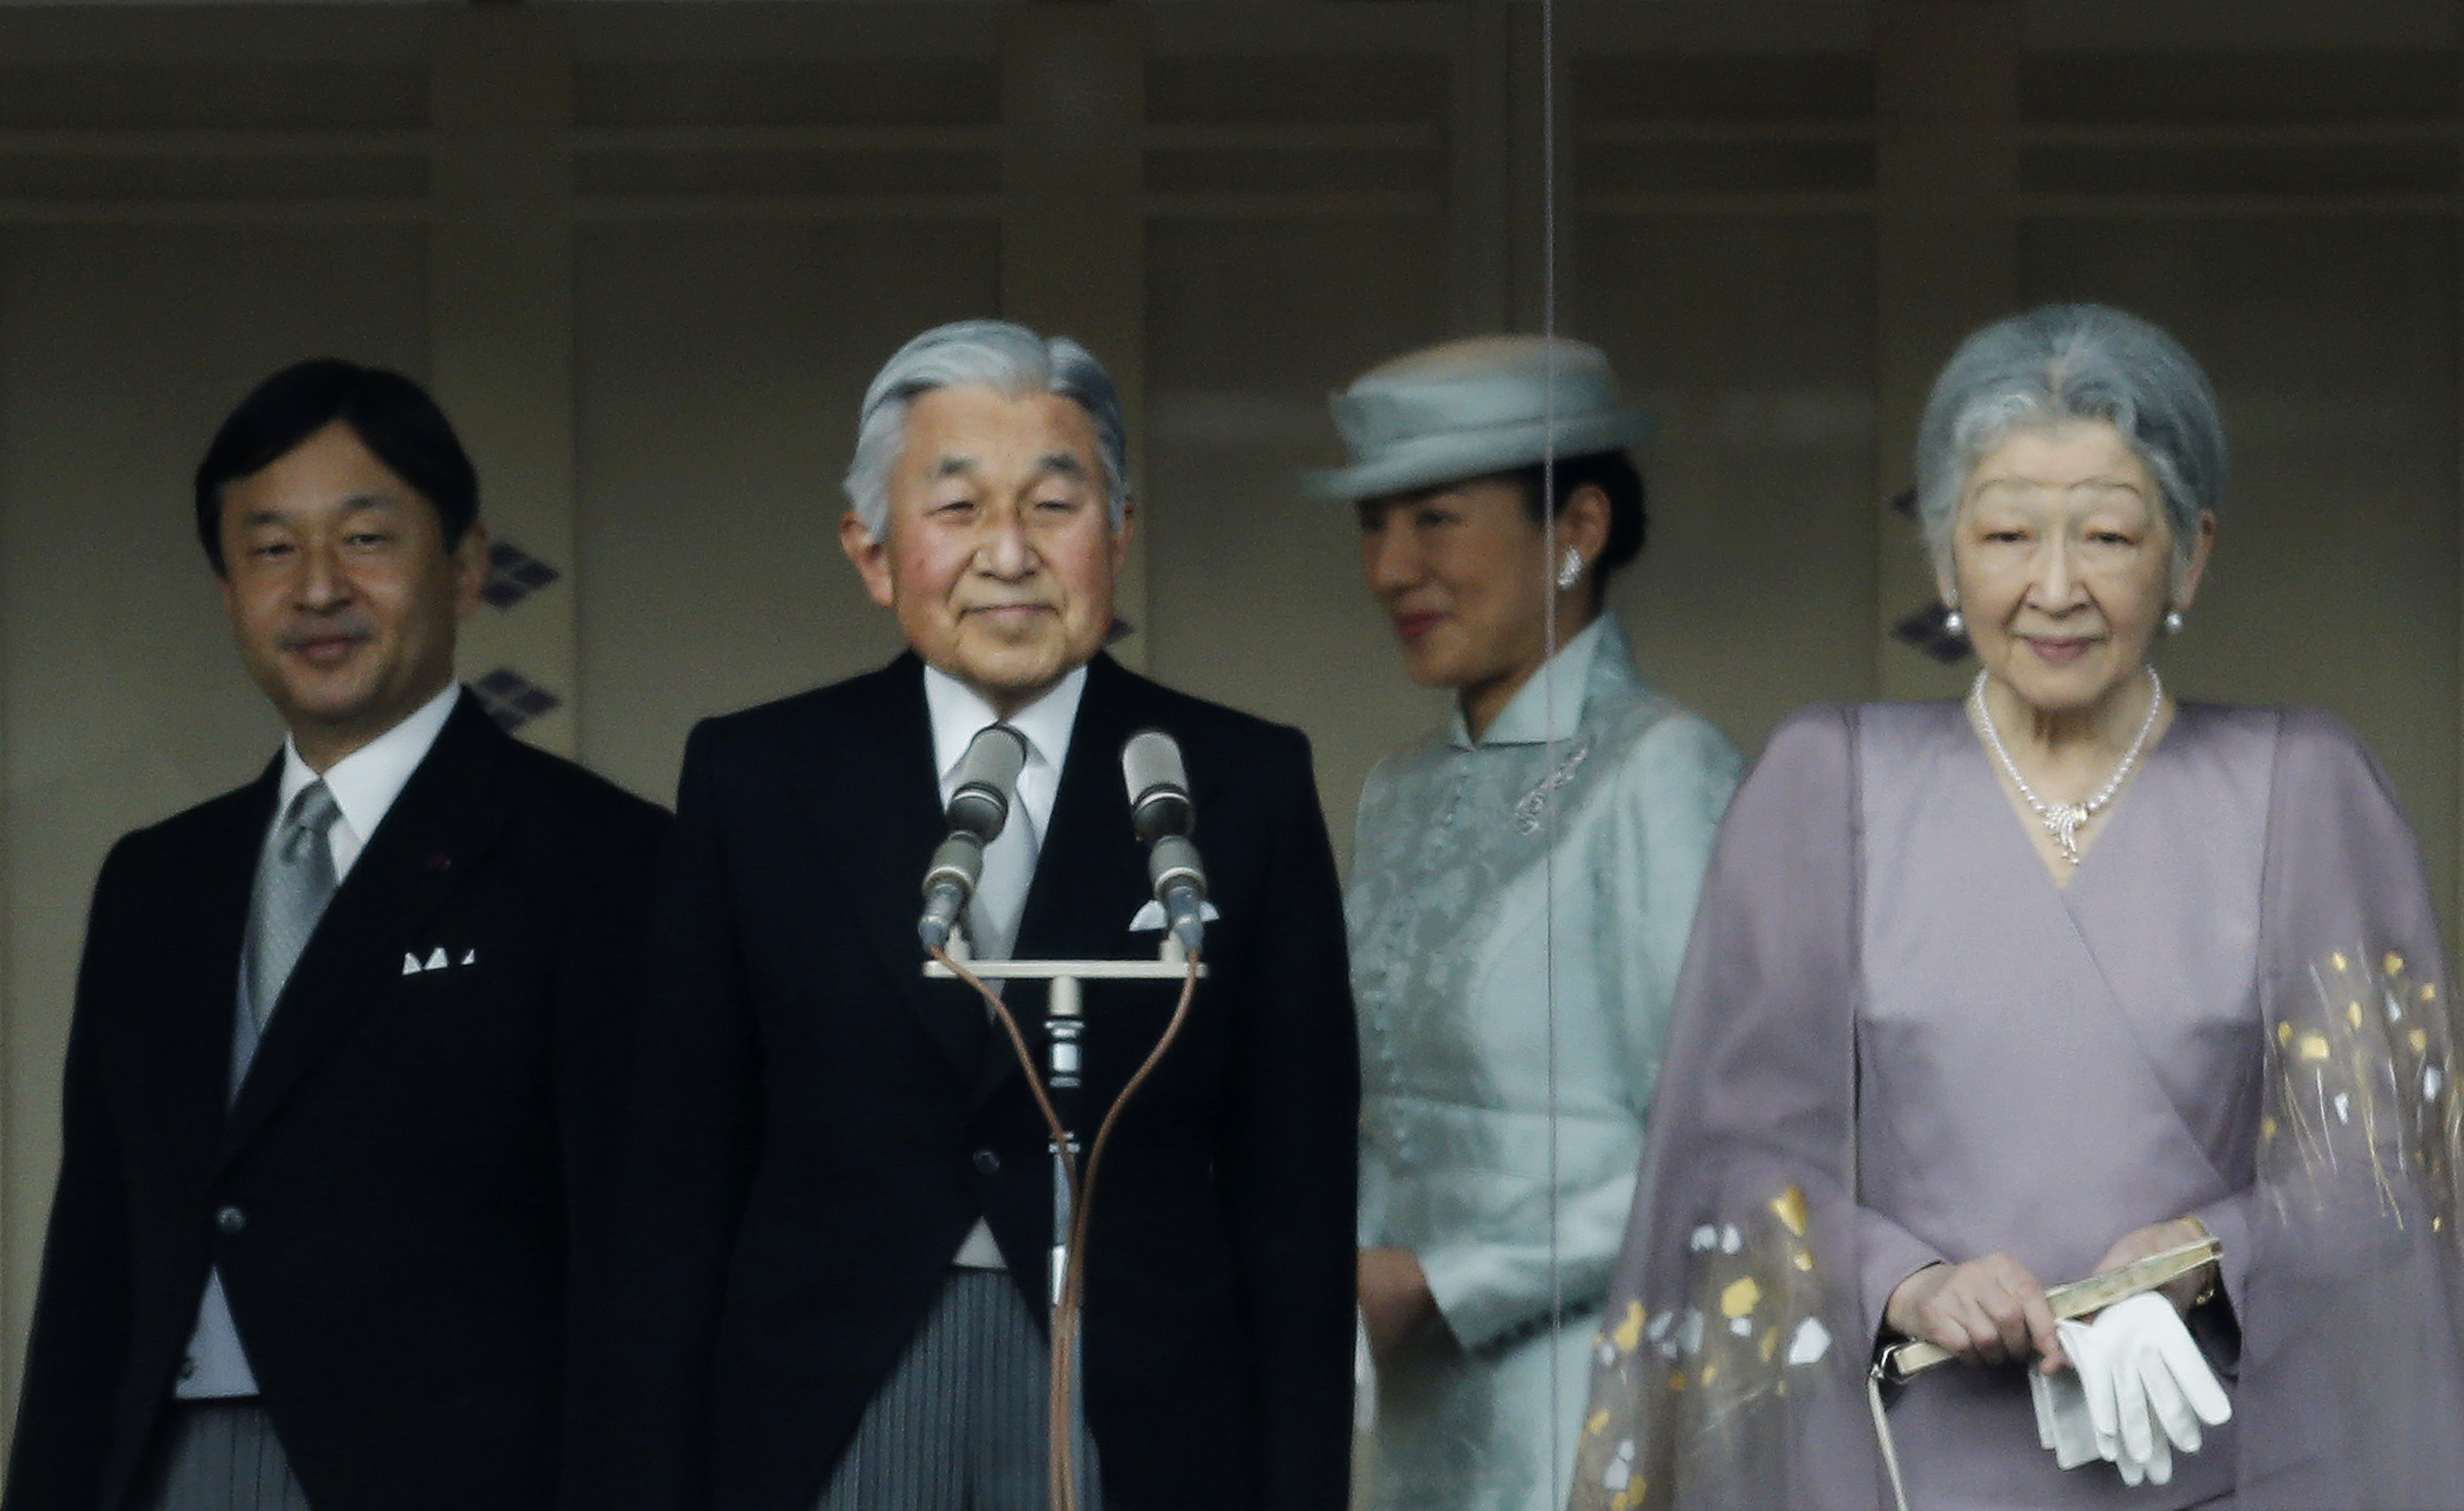 Japan's Crown Prince Naruhito (L-R), Emperor Akihito, Crown Princess Masako and Empress Michiko stand in front of well-wishers who gathered to celebrate the monarch's 80th birthday at the Imperial Palace in Tokyo December 23, 2013. REUTERS/Yuya Shino...